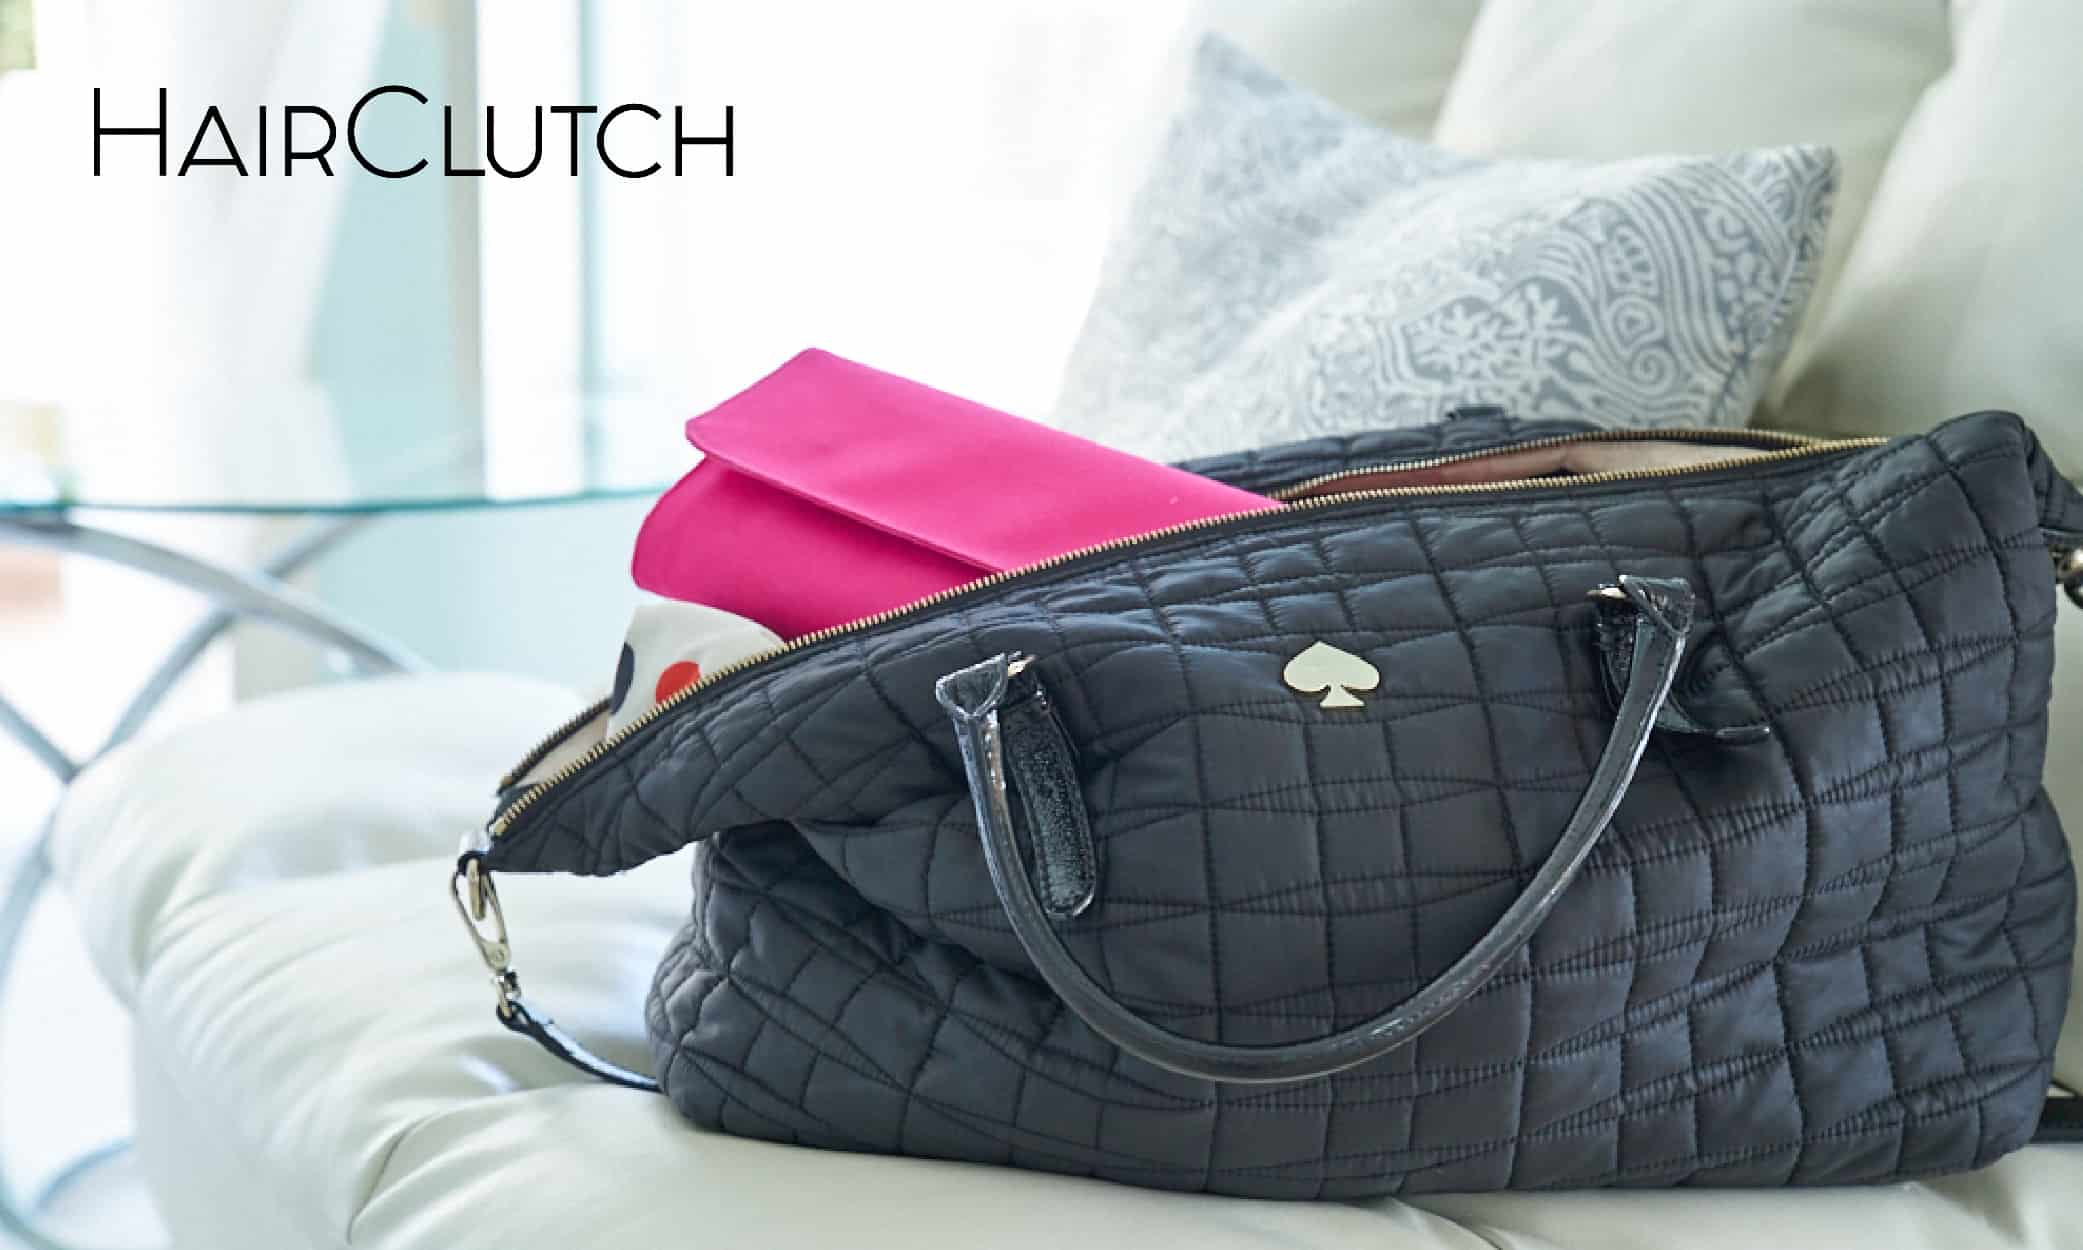 A black HairClutch purse back sitting on a couch